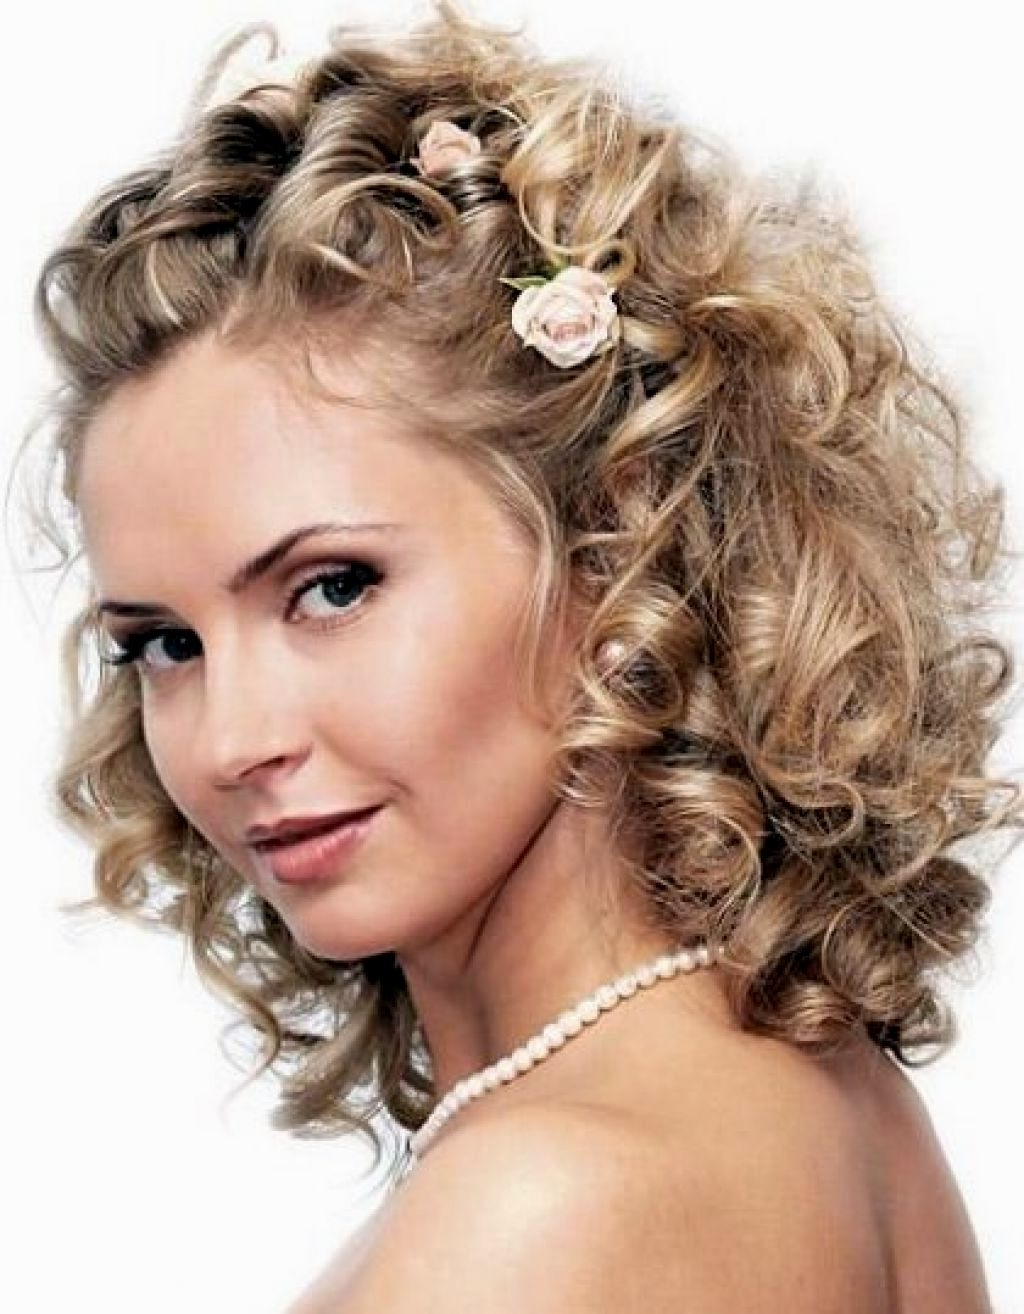 Bridalrstyles Medium Lengthr Wedding For With Veil Long And Headband Pertaining To Recent Wedding Hairstyles For Shoulder Length Black Hair (View 13 of 15)